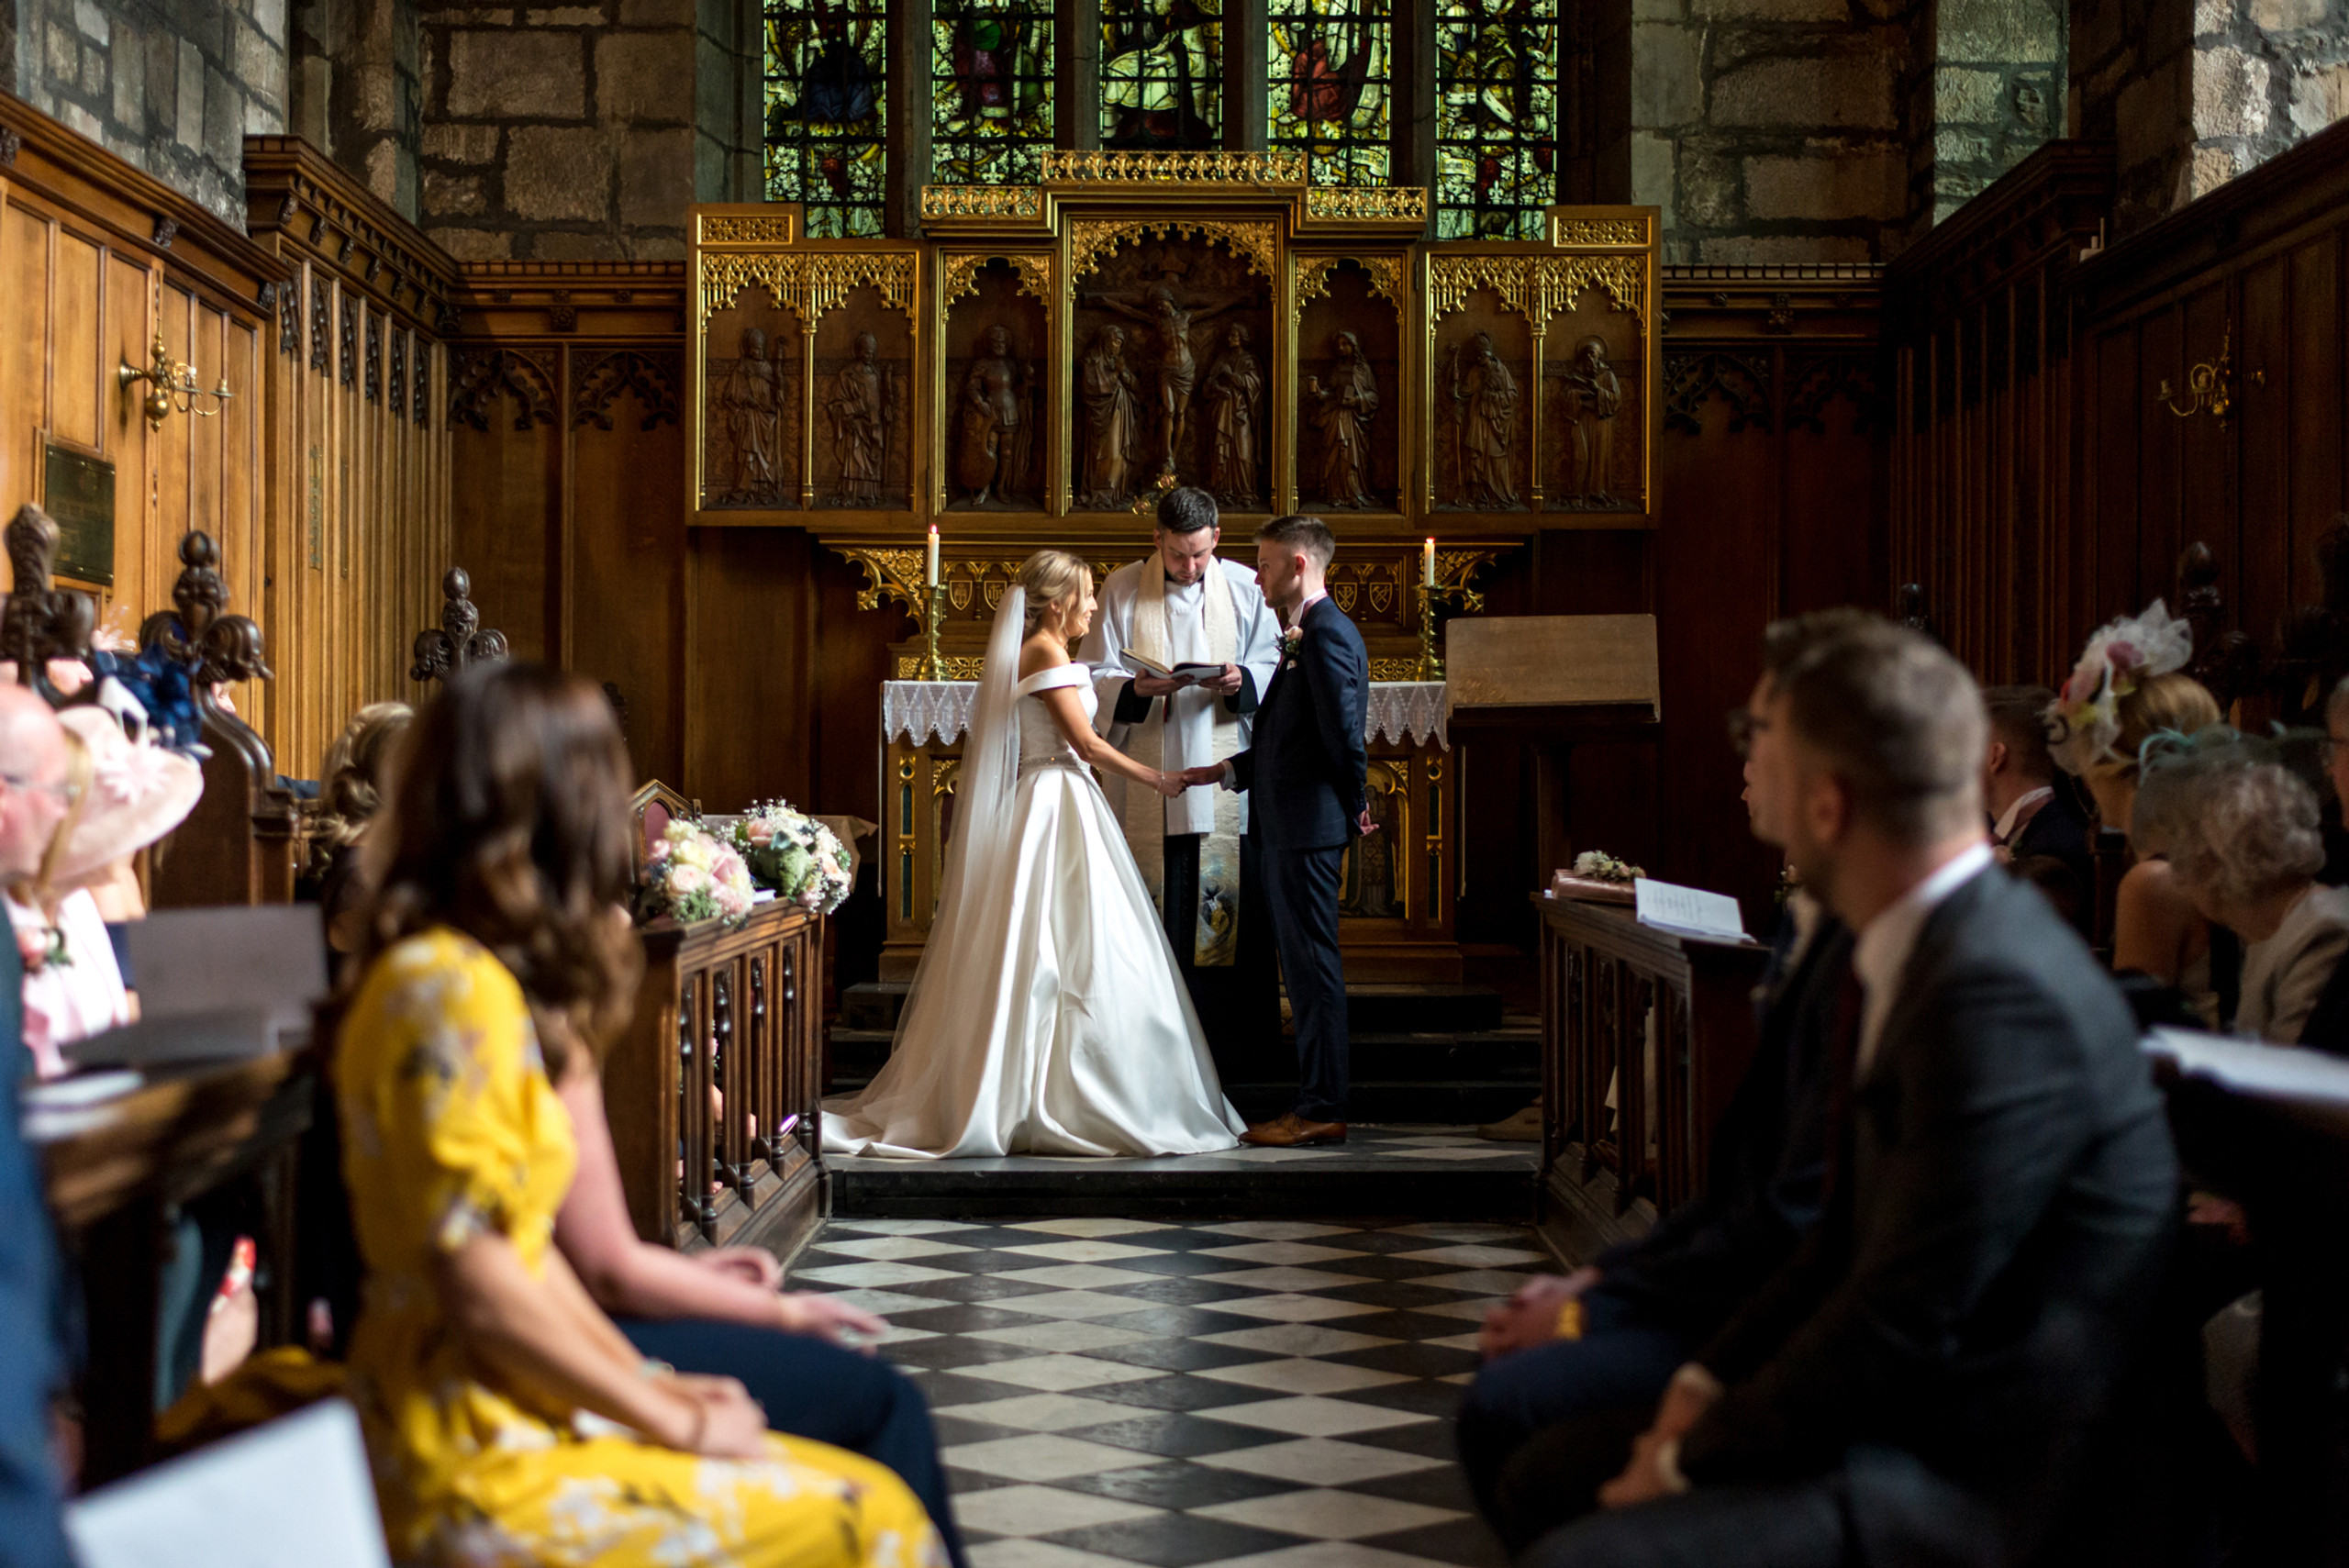 Photograph of bride and groom holding hands at the altar of Tunstall Chapel of Durham Castle on day of wedding ceremony